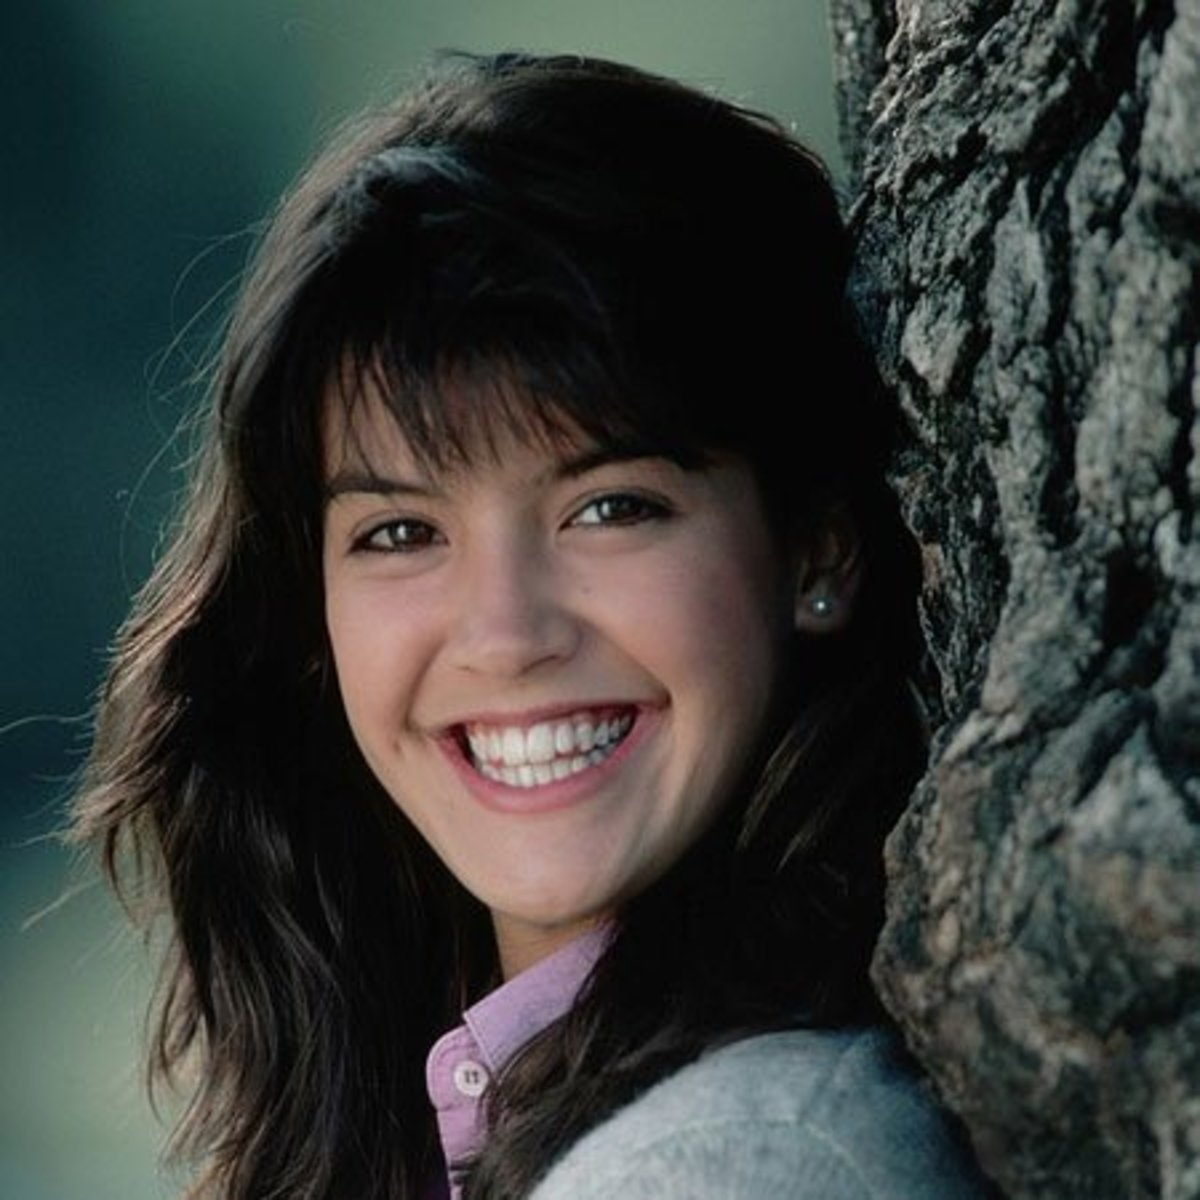 Picture of Phoebe Cates